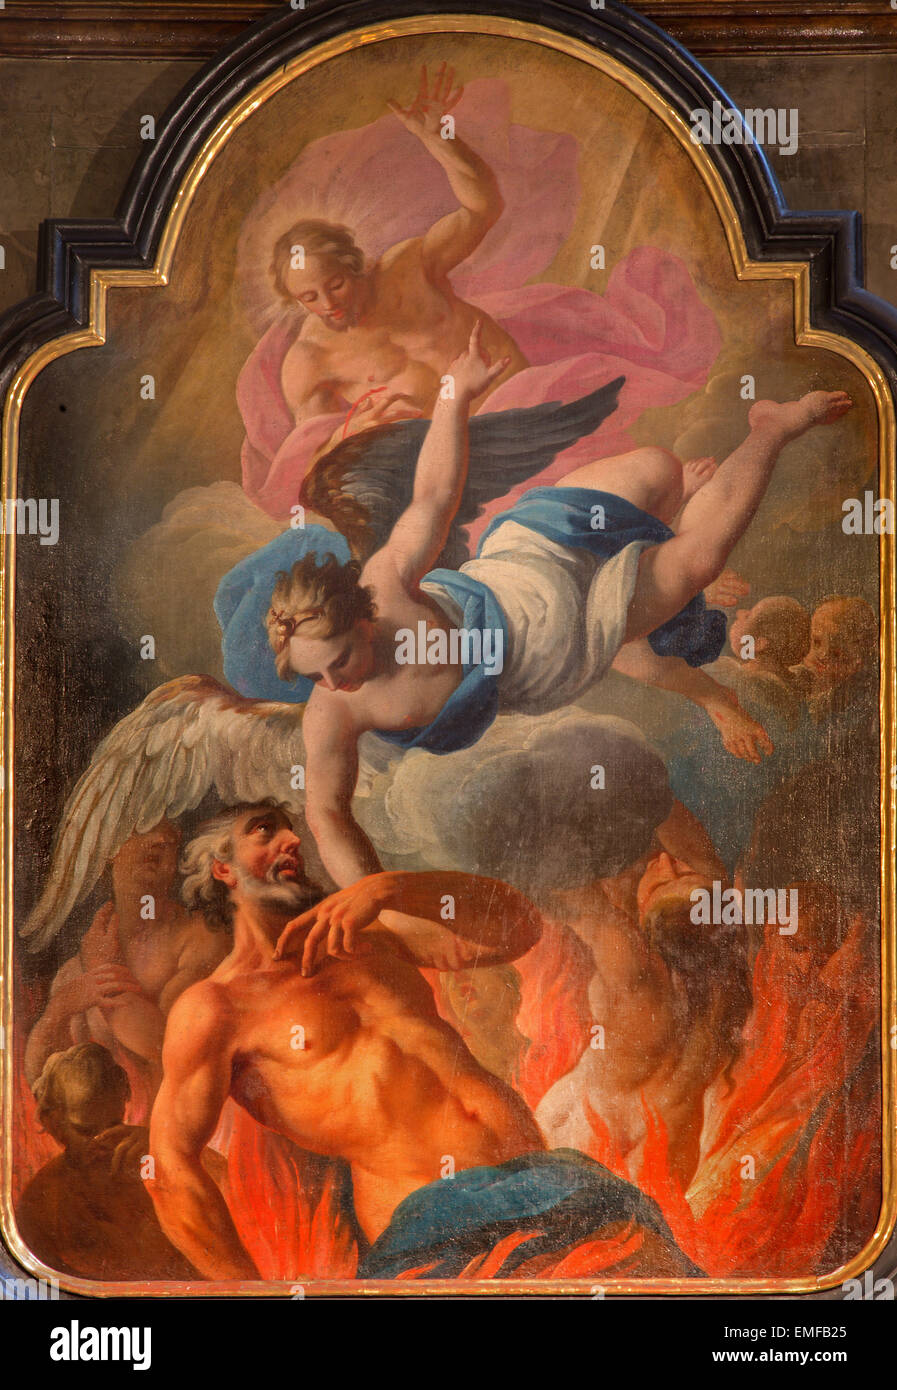 VIENNA, AUSTRIA - FEBRUARY 17, 2014: The paint of liberation of the soul form purgatory in baroque st. Annes church. - Stock Image